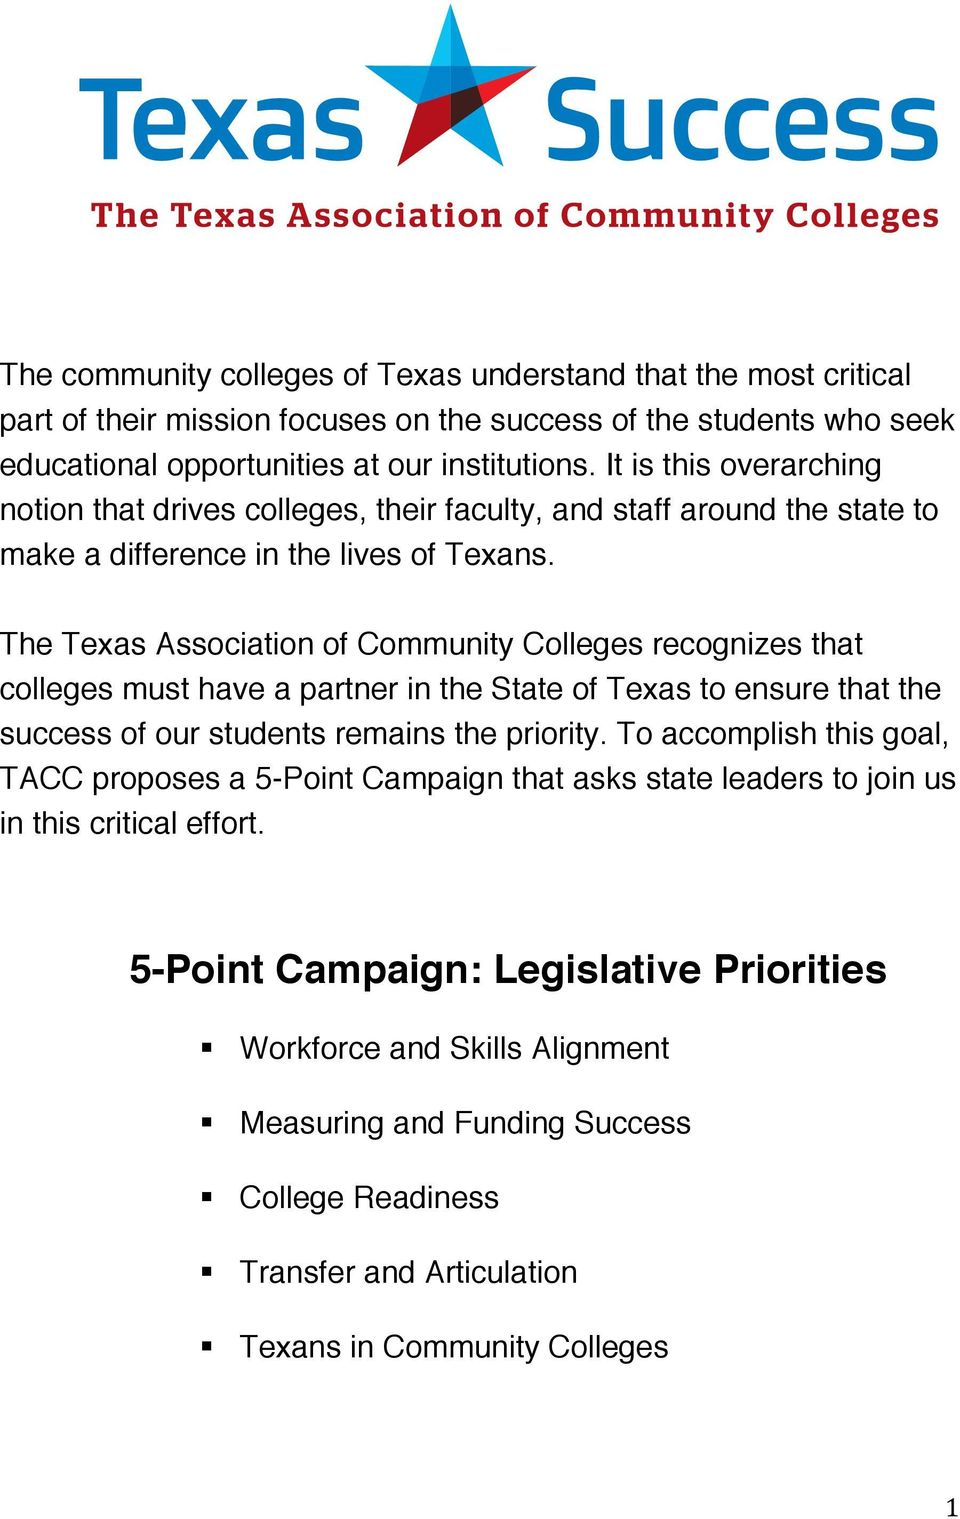 The Texas Association of Community Colleges recognizes that colleges must have a partner in the State of Texas to ensure that the success of our students remains the priority.